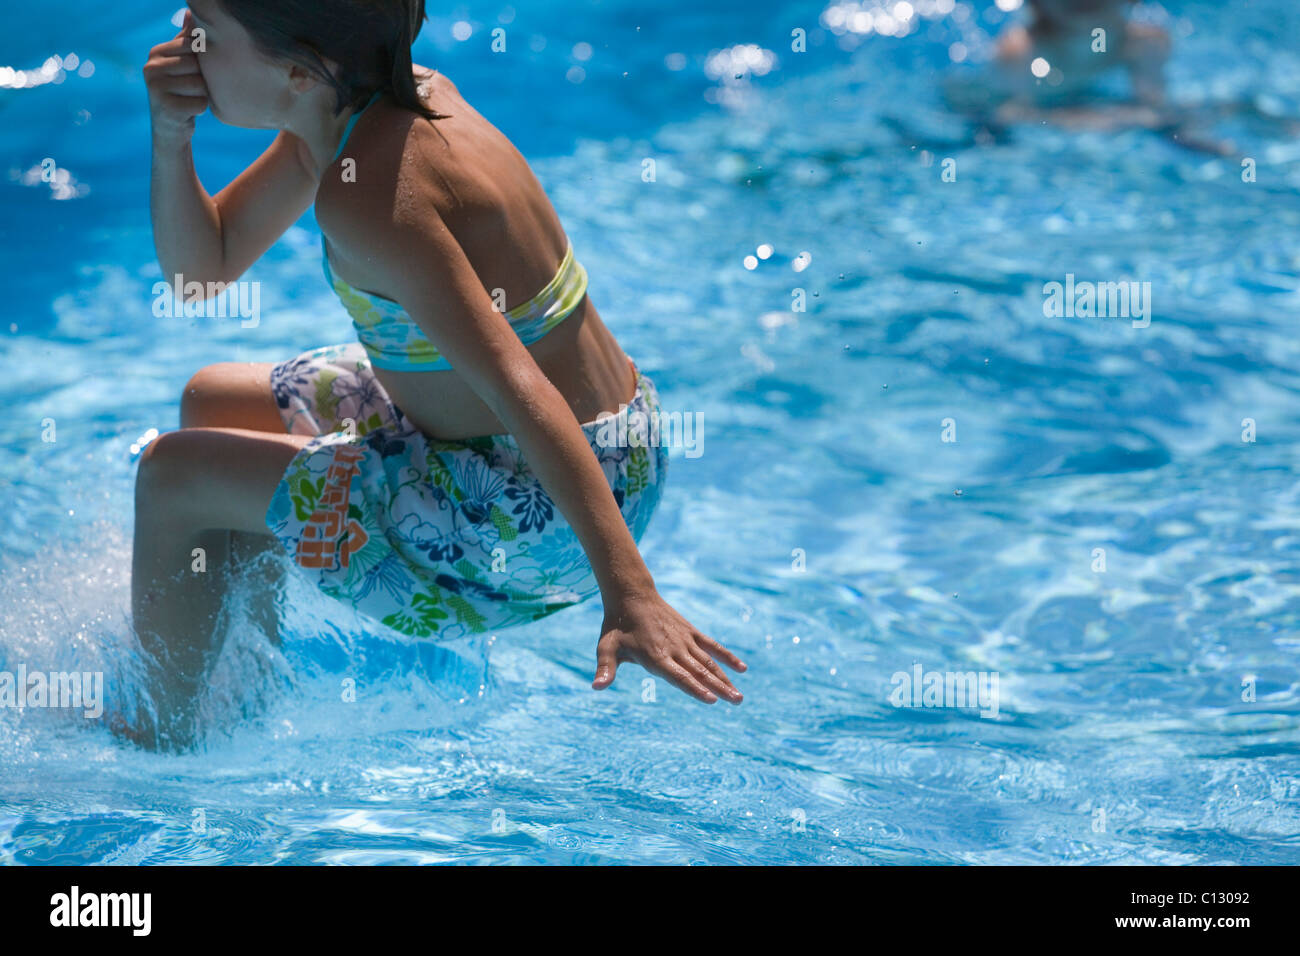 young girl jumping into swimming pool - Stock Image